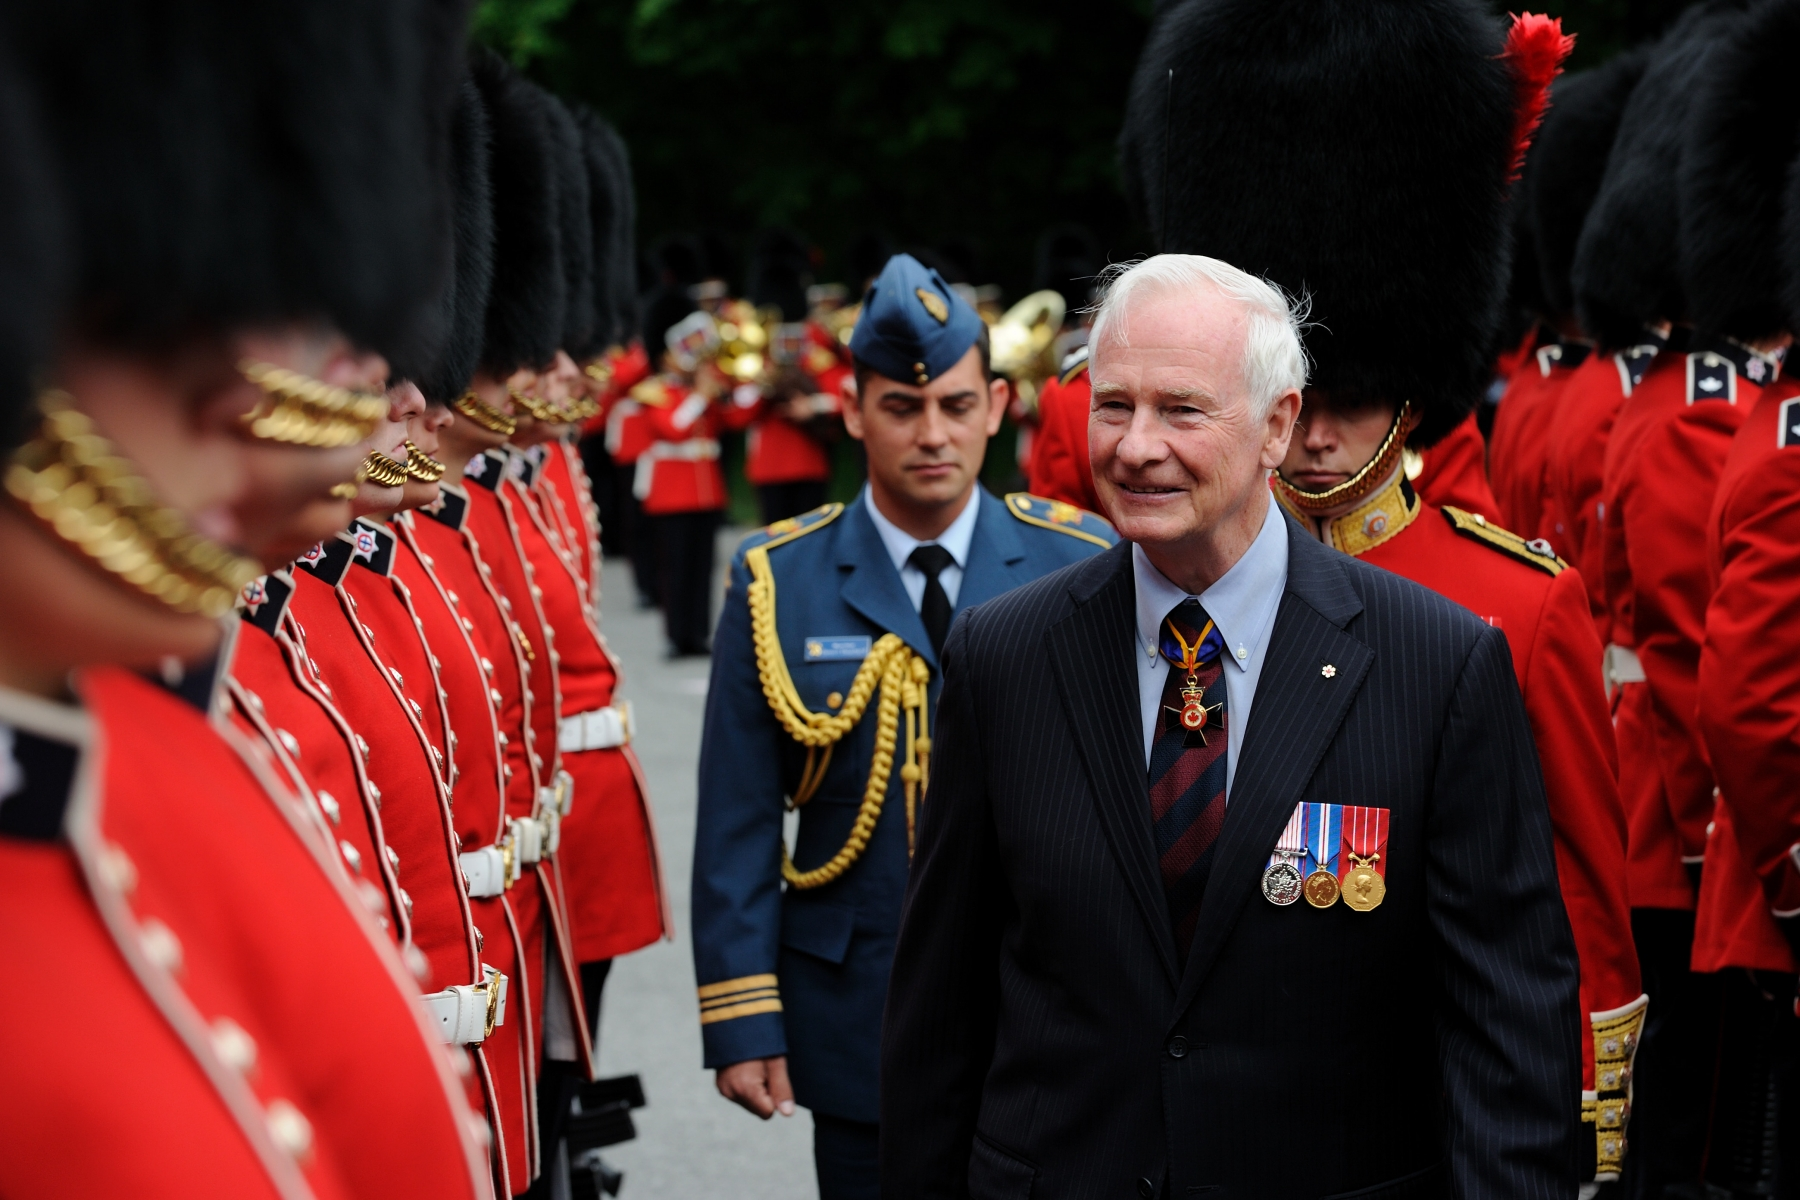 His Excellency performed the inspection of the Ceremonial Guard on the grounds of Rideau Hall.